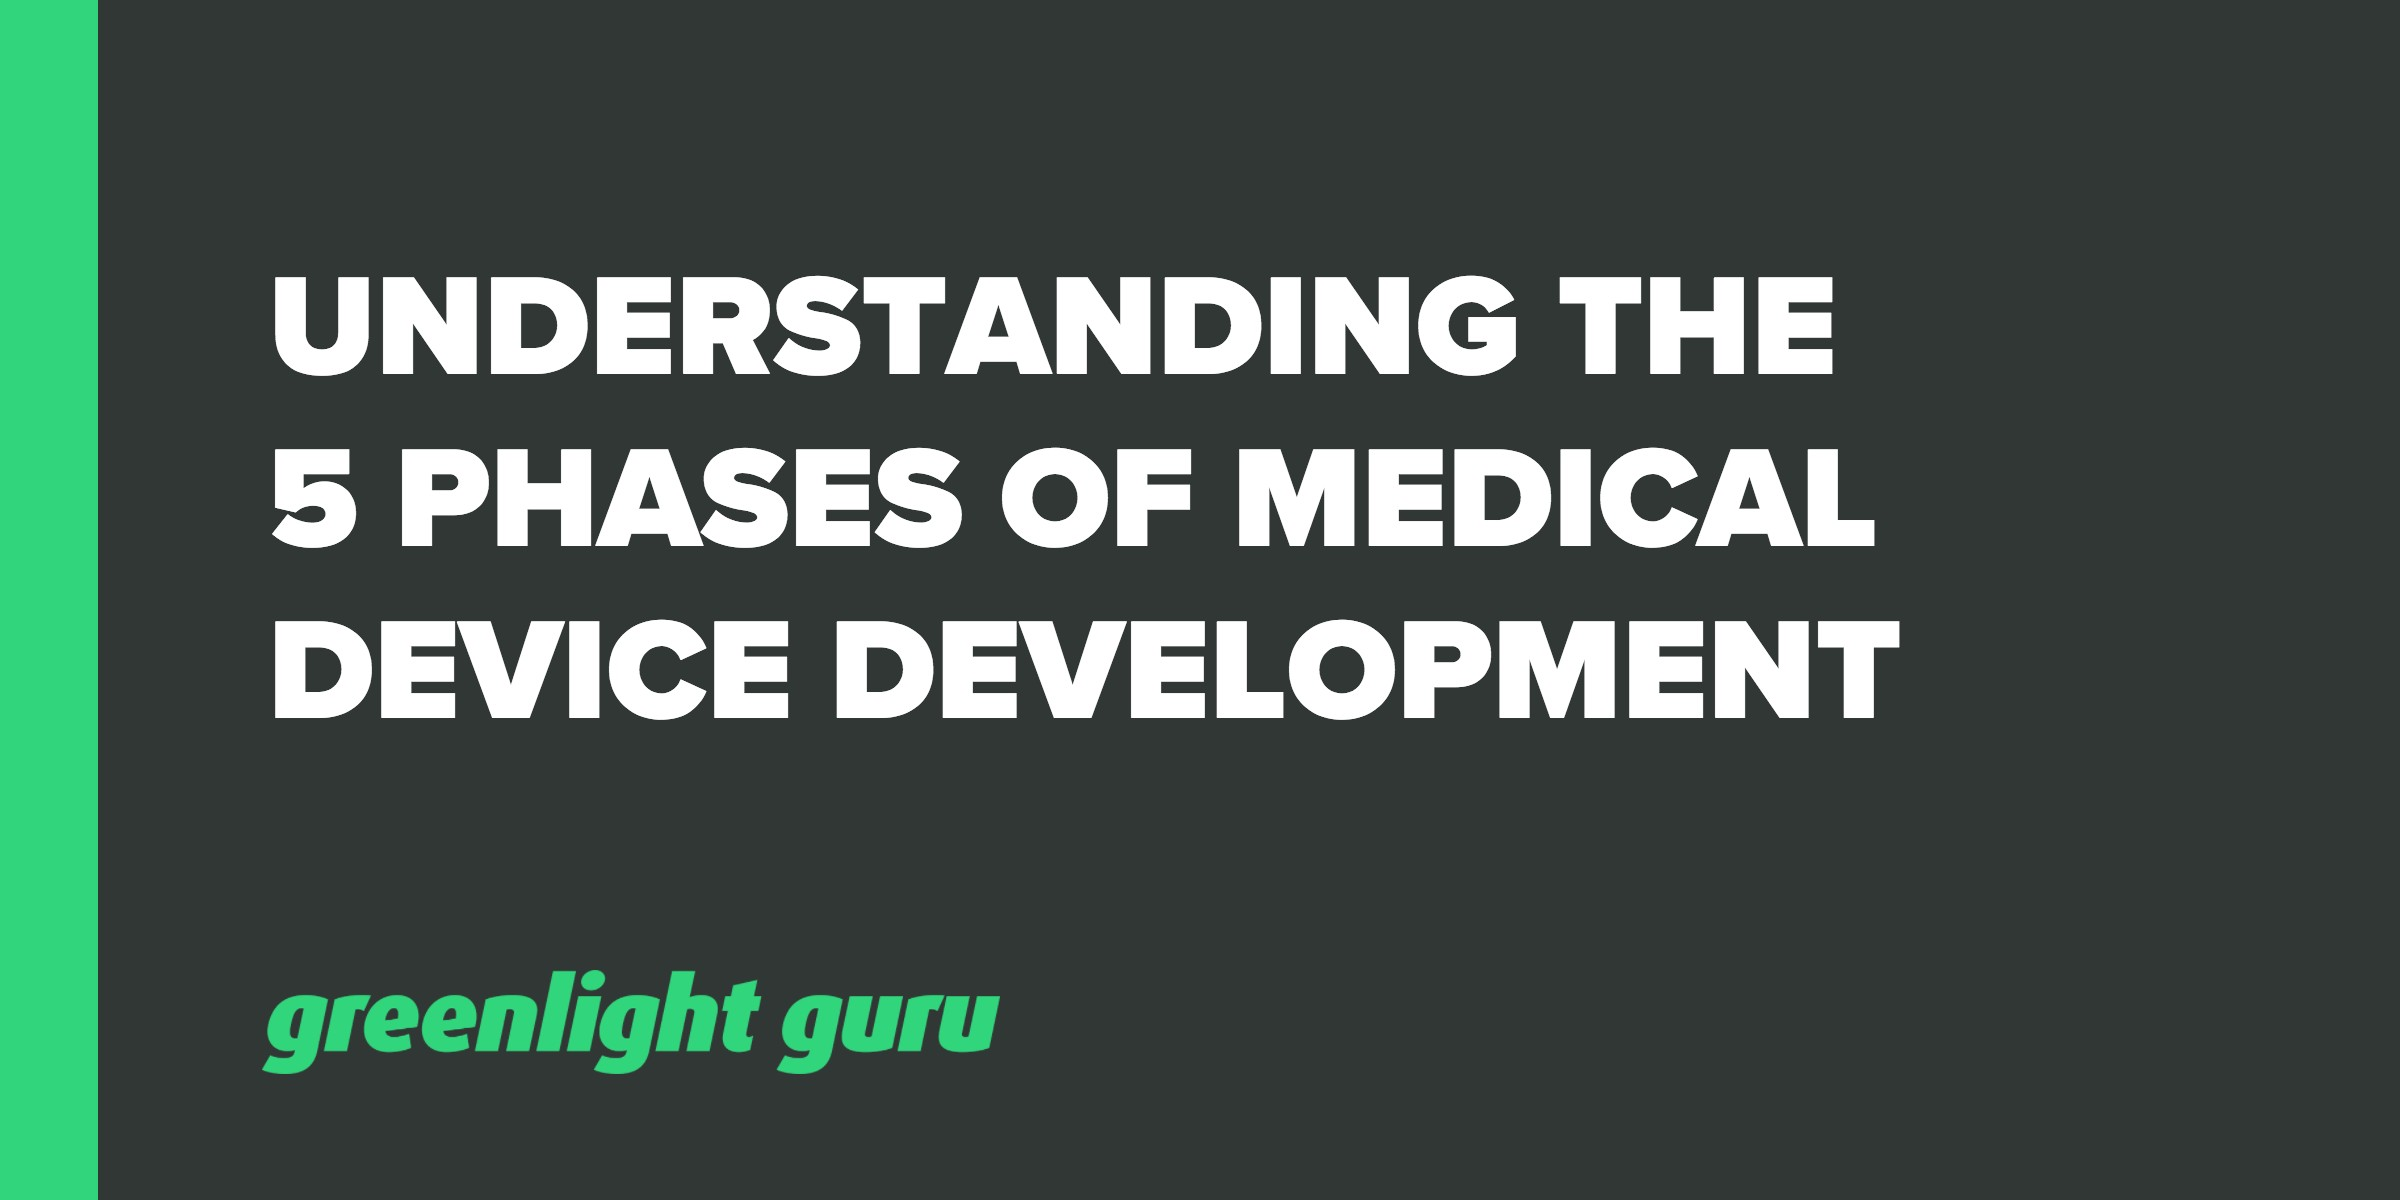 Understanding the 5 Phases of Medical Device Development on clinical research brochure template, clinical medical research, clinical research business cards, clinical research powerpoint, clinical research logo,